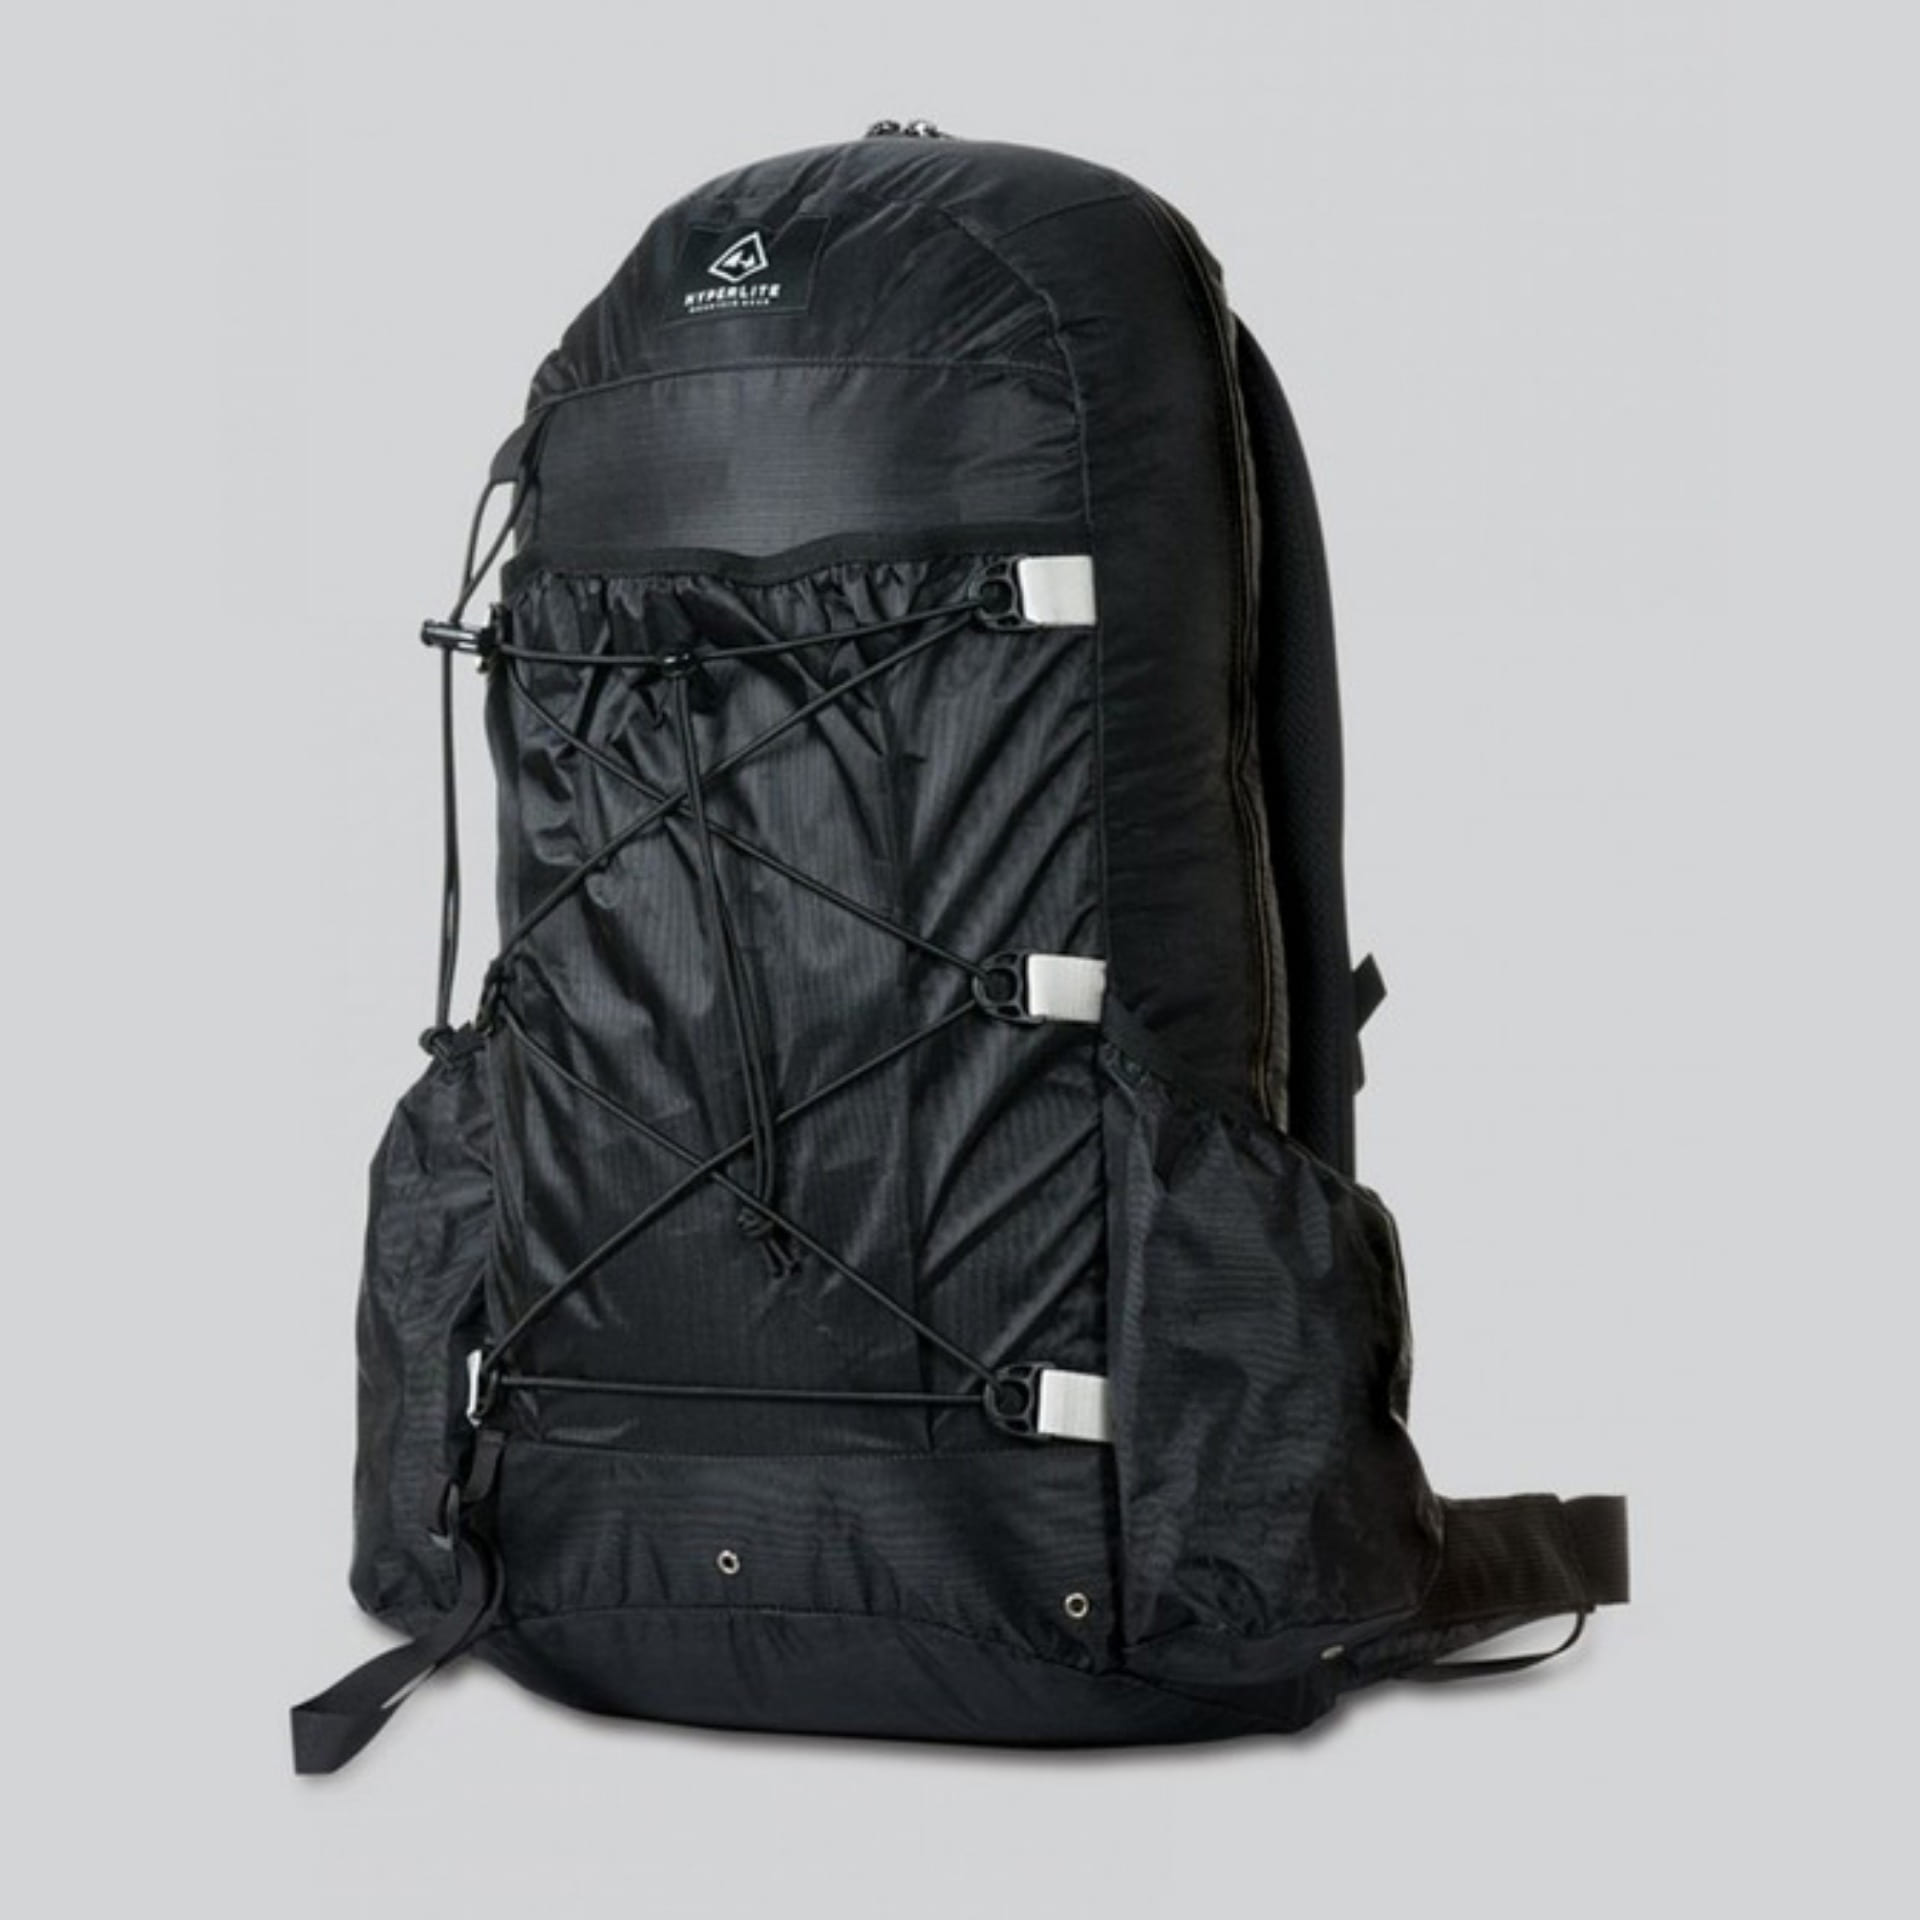 Daybreak Ultralight Daypack(데이 브레이크) M